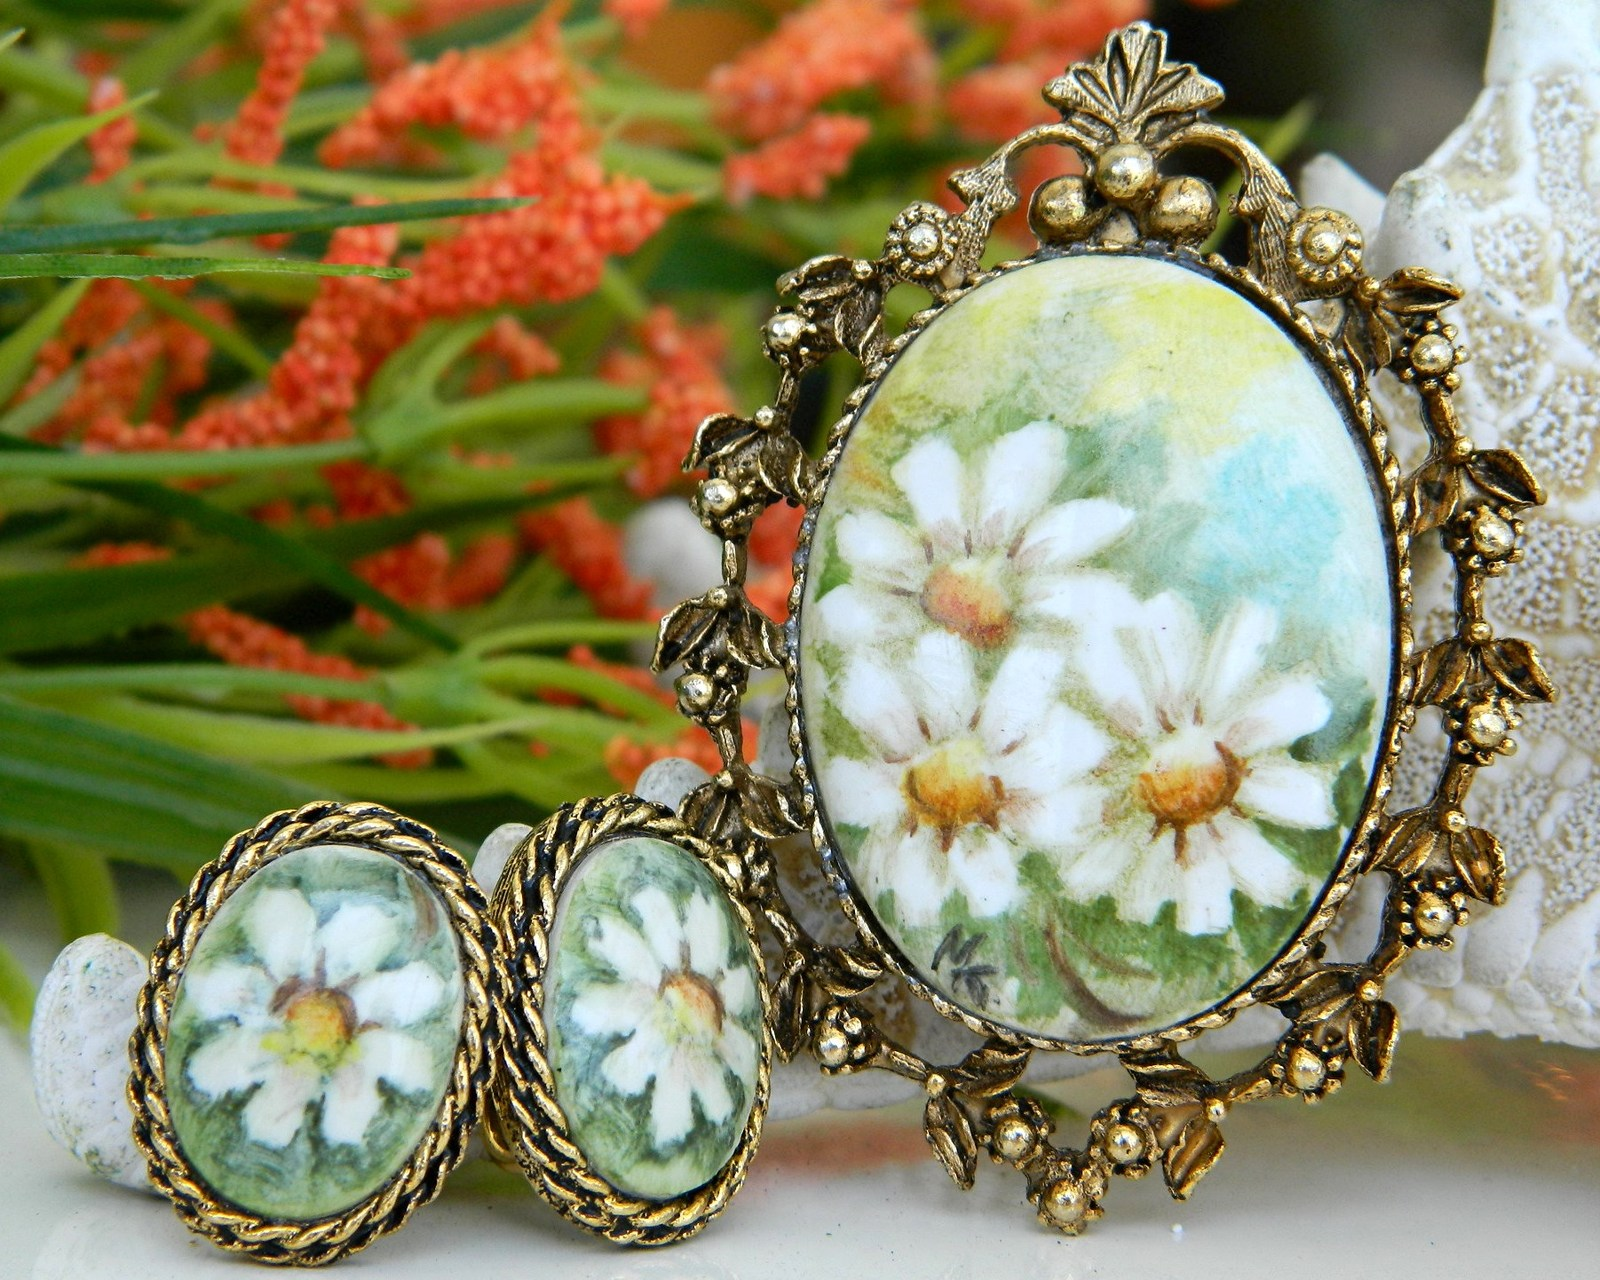 Vintage Hand Painted Porcelain Brooch Pendant Earrings Daisy